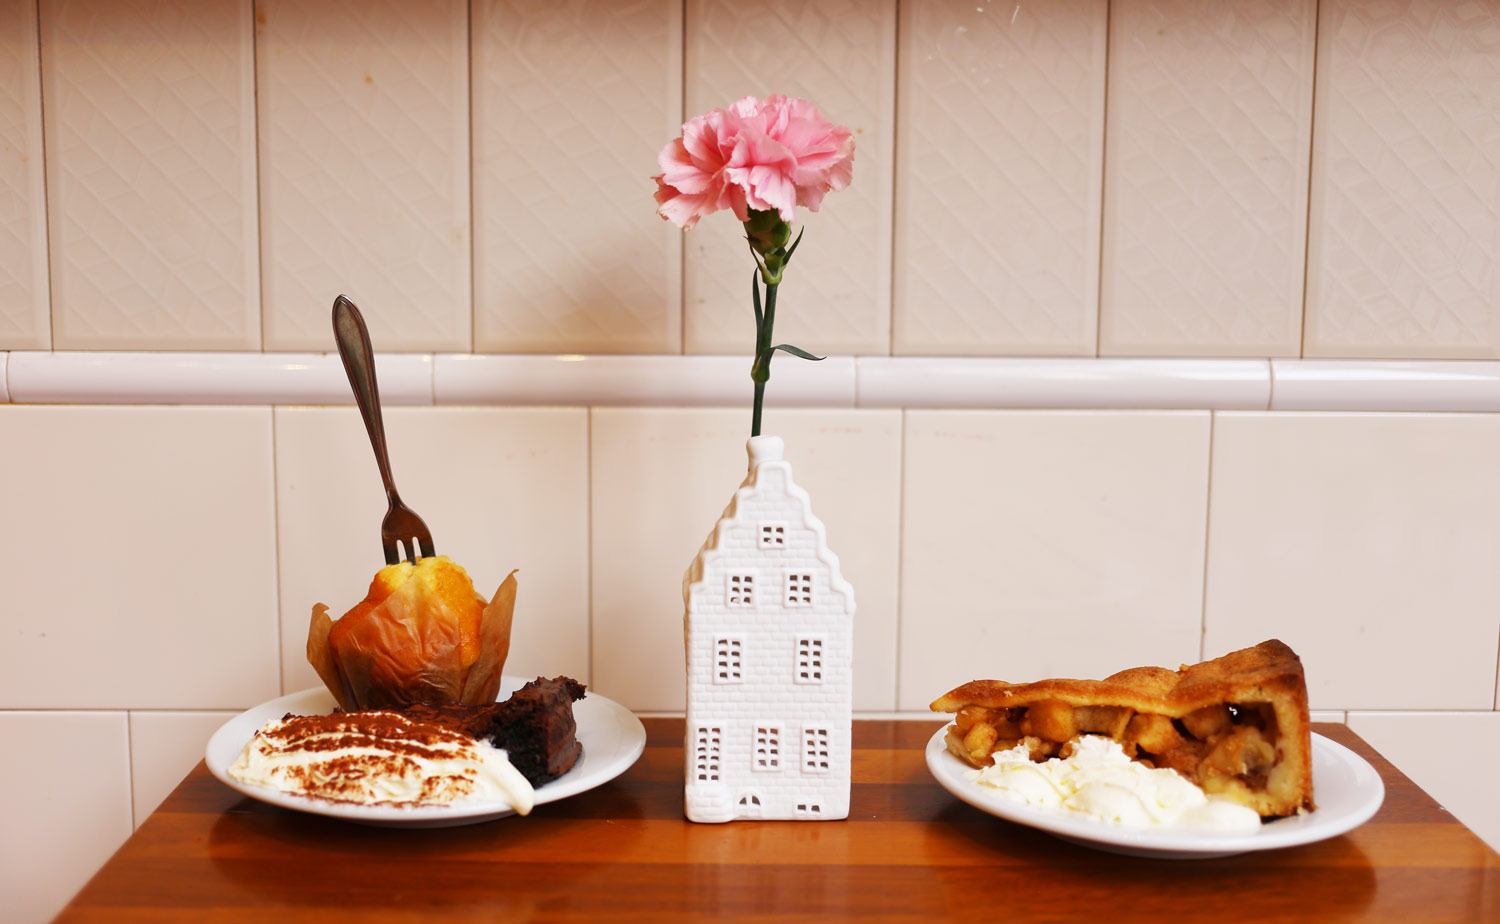 CAFE-STOCK_Chocolate-Cake-and-Apple-Pie_Hotel-The-Exchange_Hello-Miss-May-Food-Guide.jpg